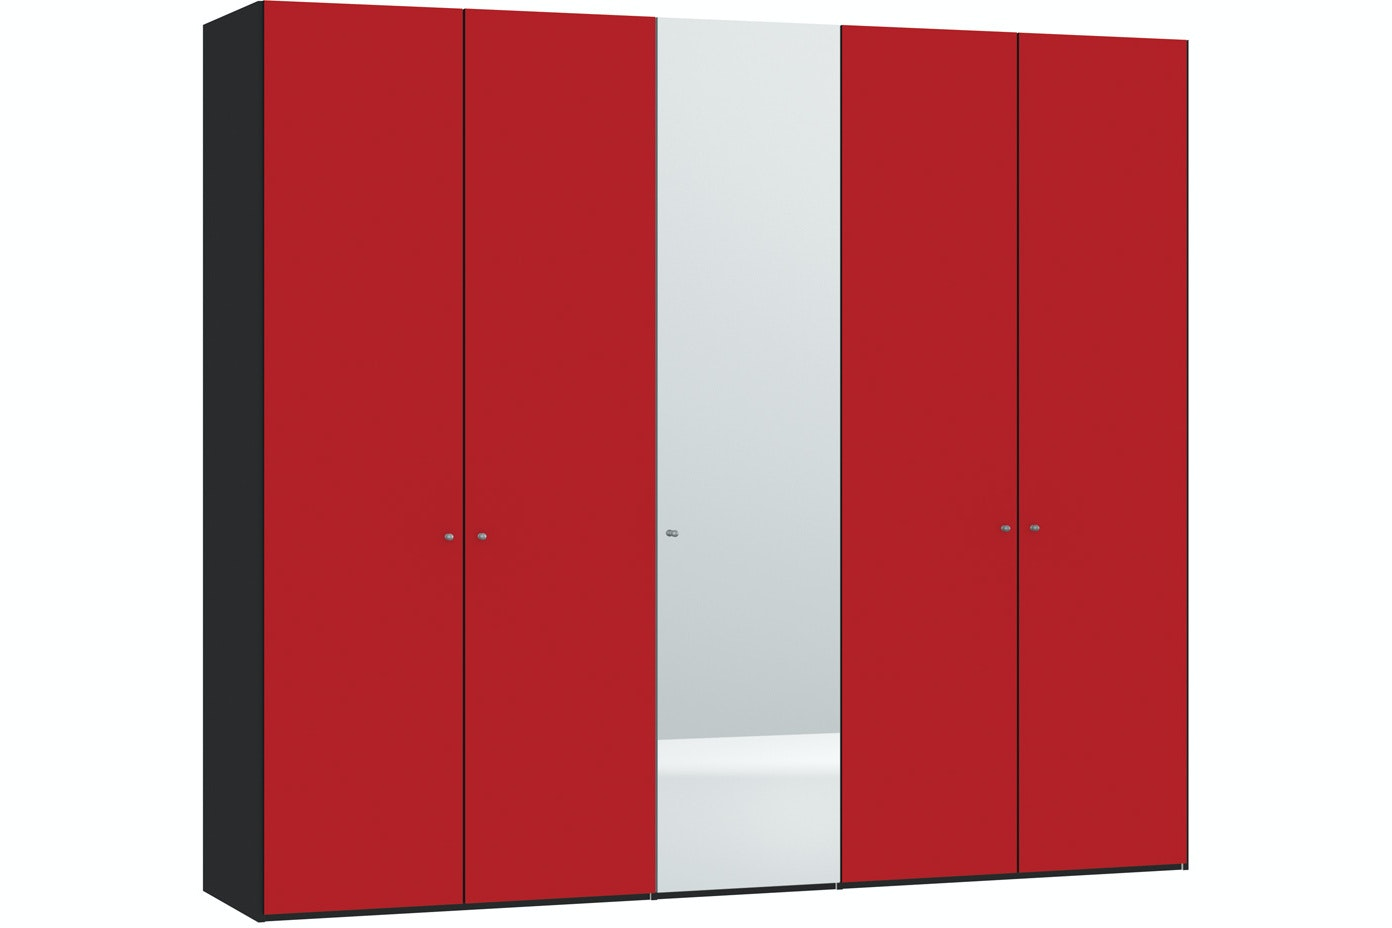 Skye Hinged 5 Door Wardrobe 253Cm | Red Glass Matt + Mirror